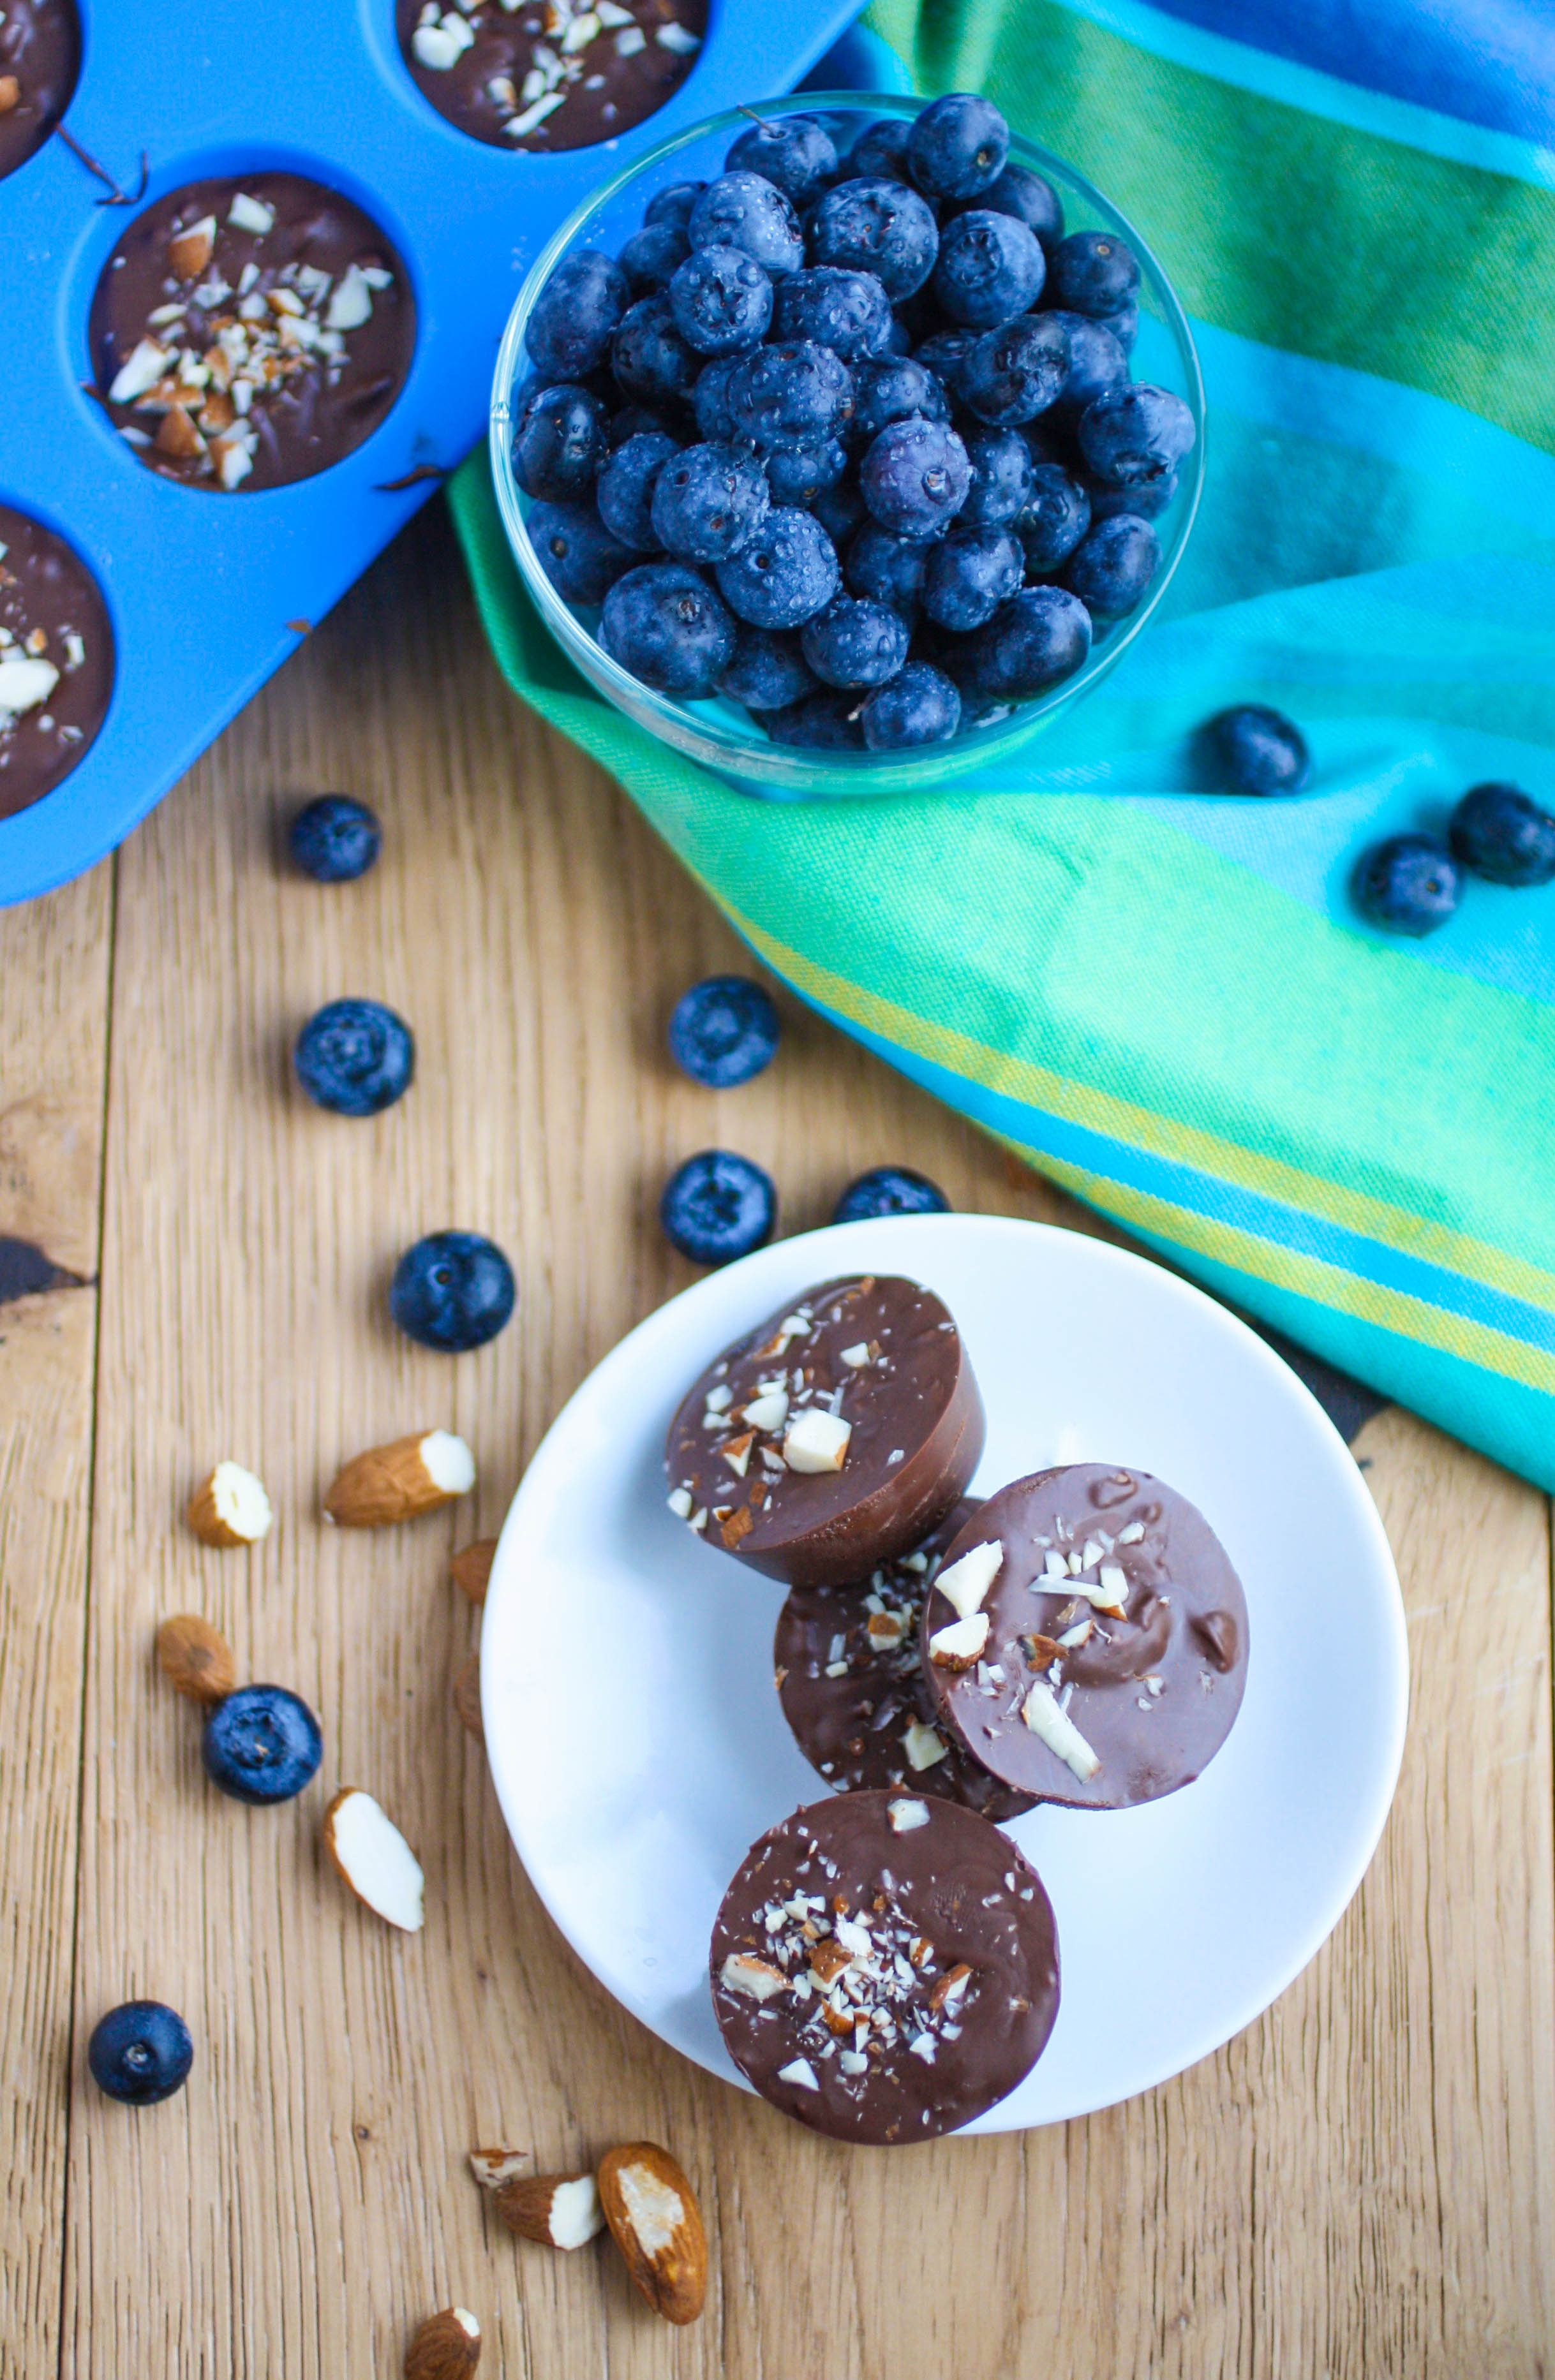 Chocolate Almond Blueberry Bites are an easy-to-make treat anytime you're craving chocolate. You'll love these candies!